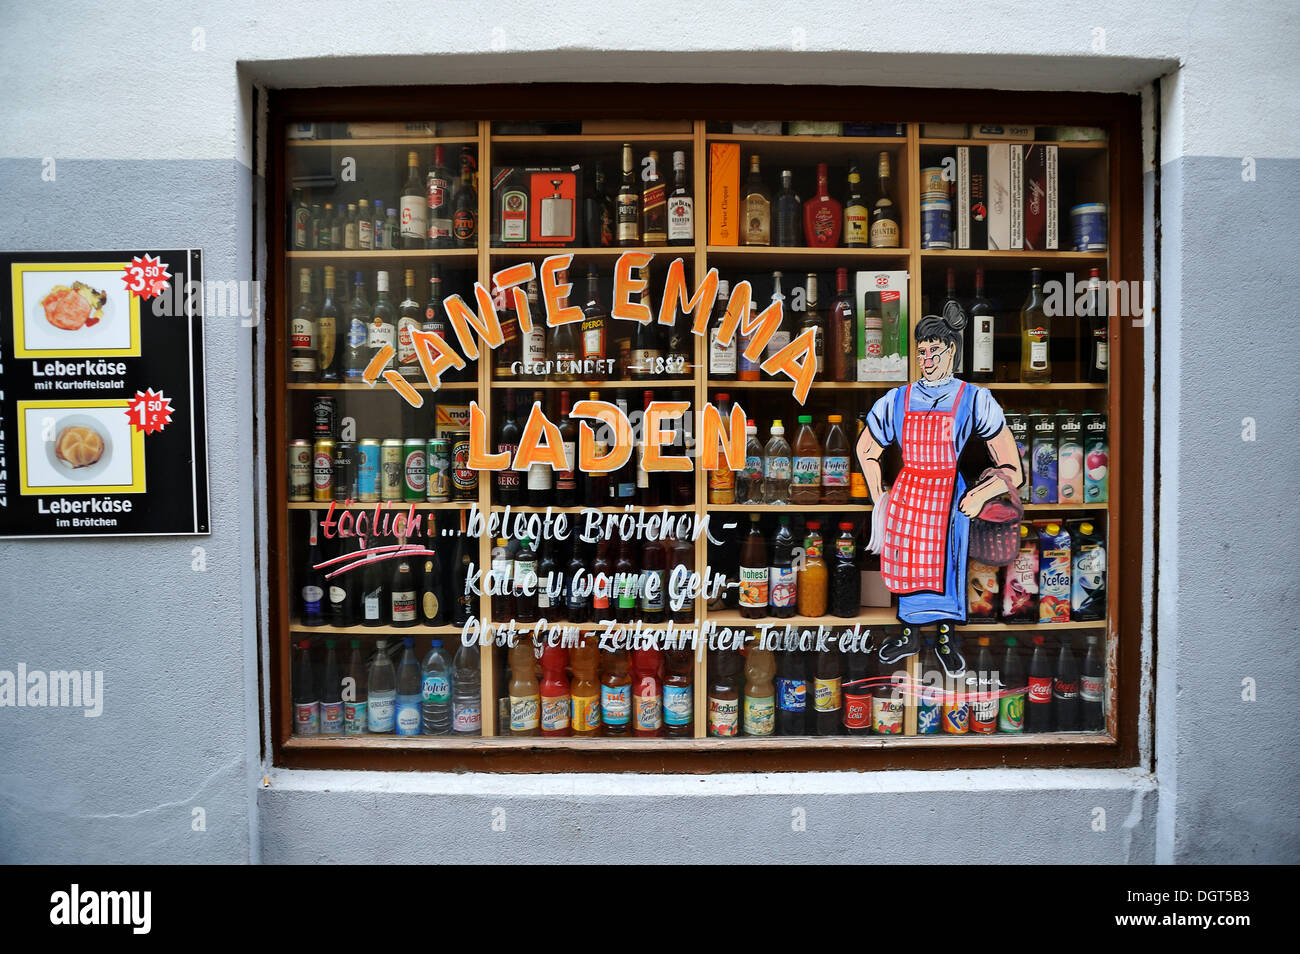 shop window of a tante emma laden german for small corner shop stock photo royalty free. Black Bedroom Furniture Sets. Home Design Ideas